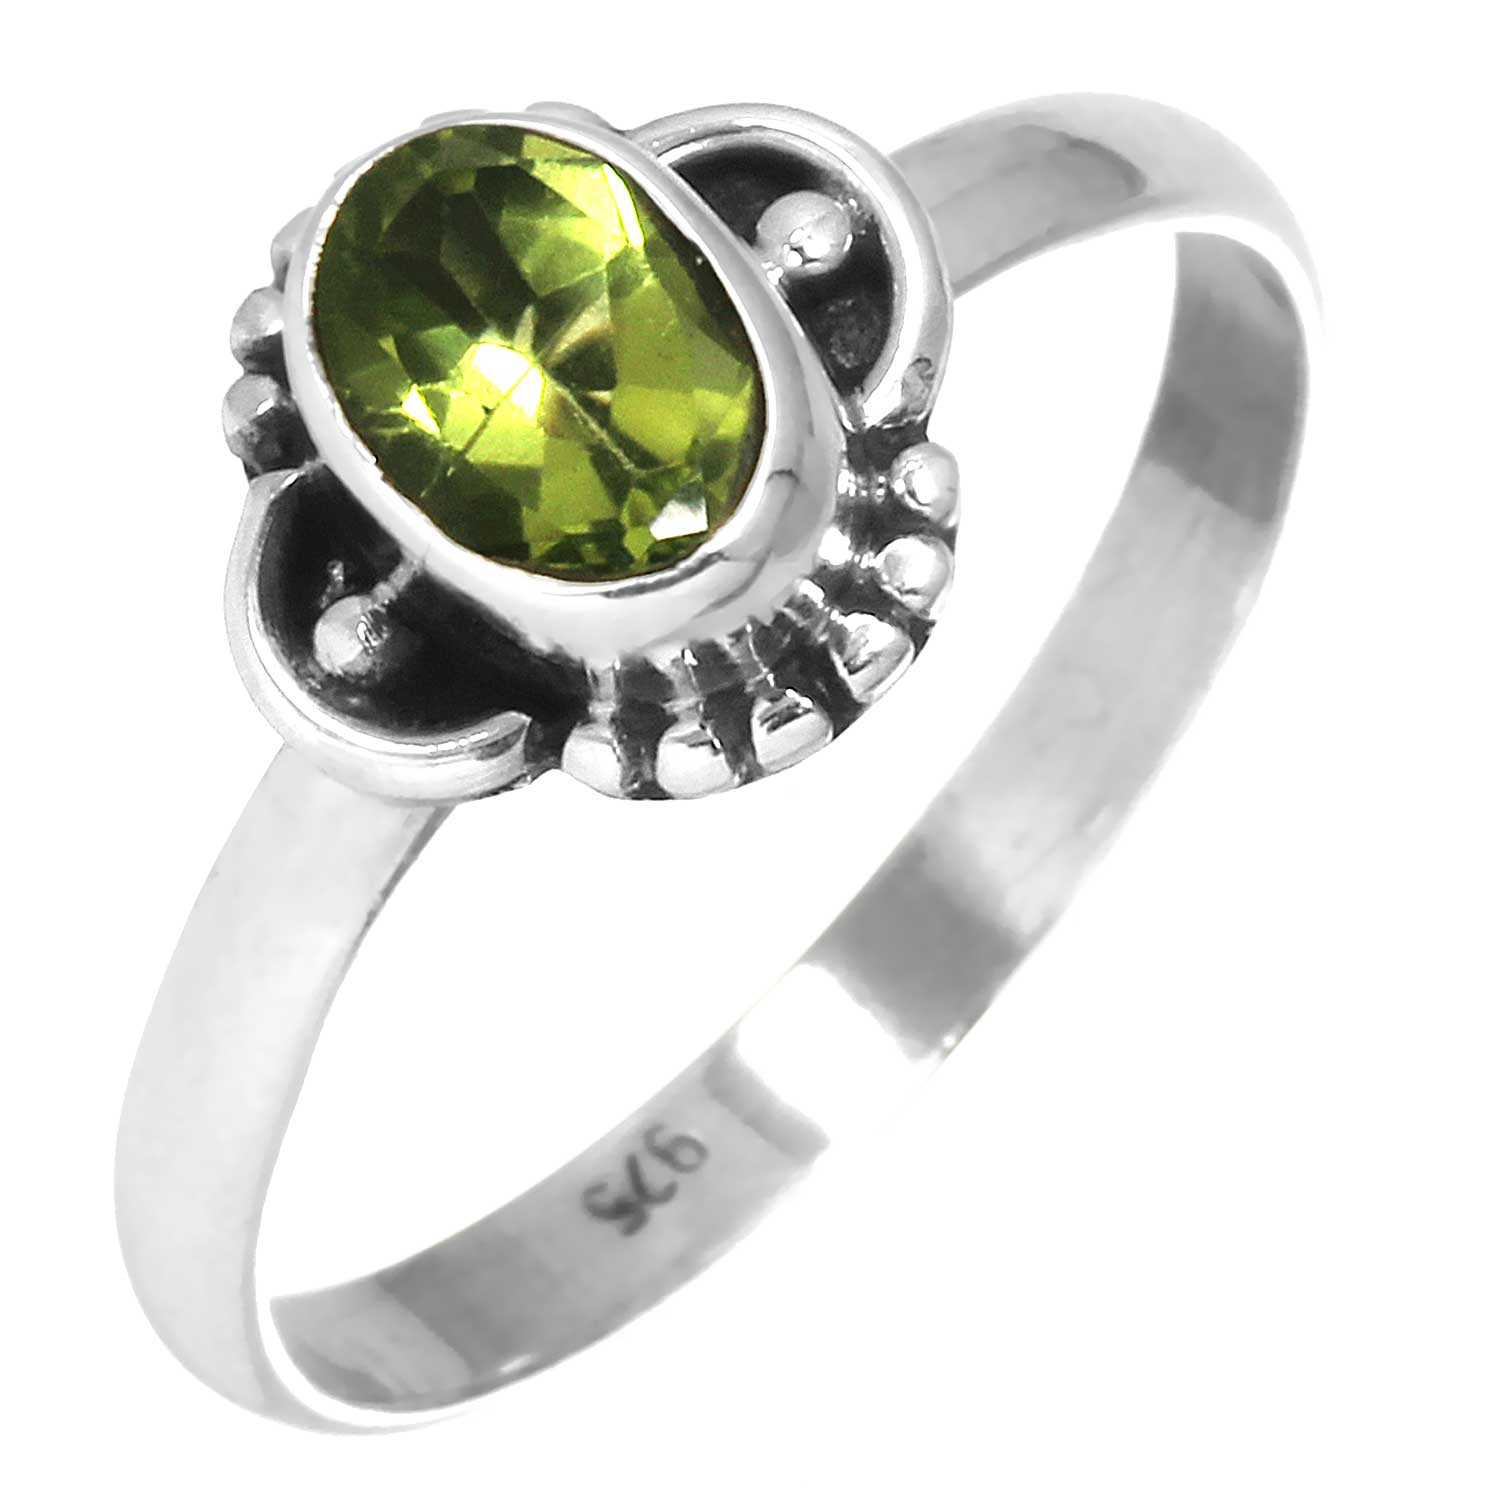 Sterling silver Peridot (2ctw) Ring ID=rg719prf